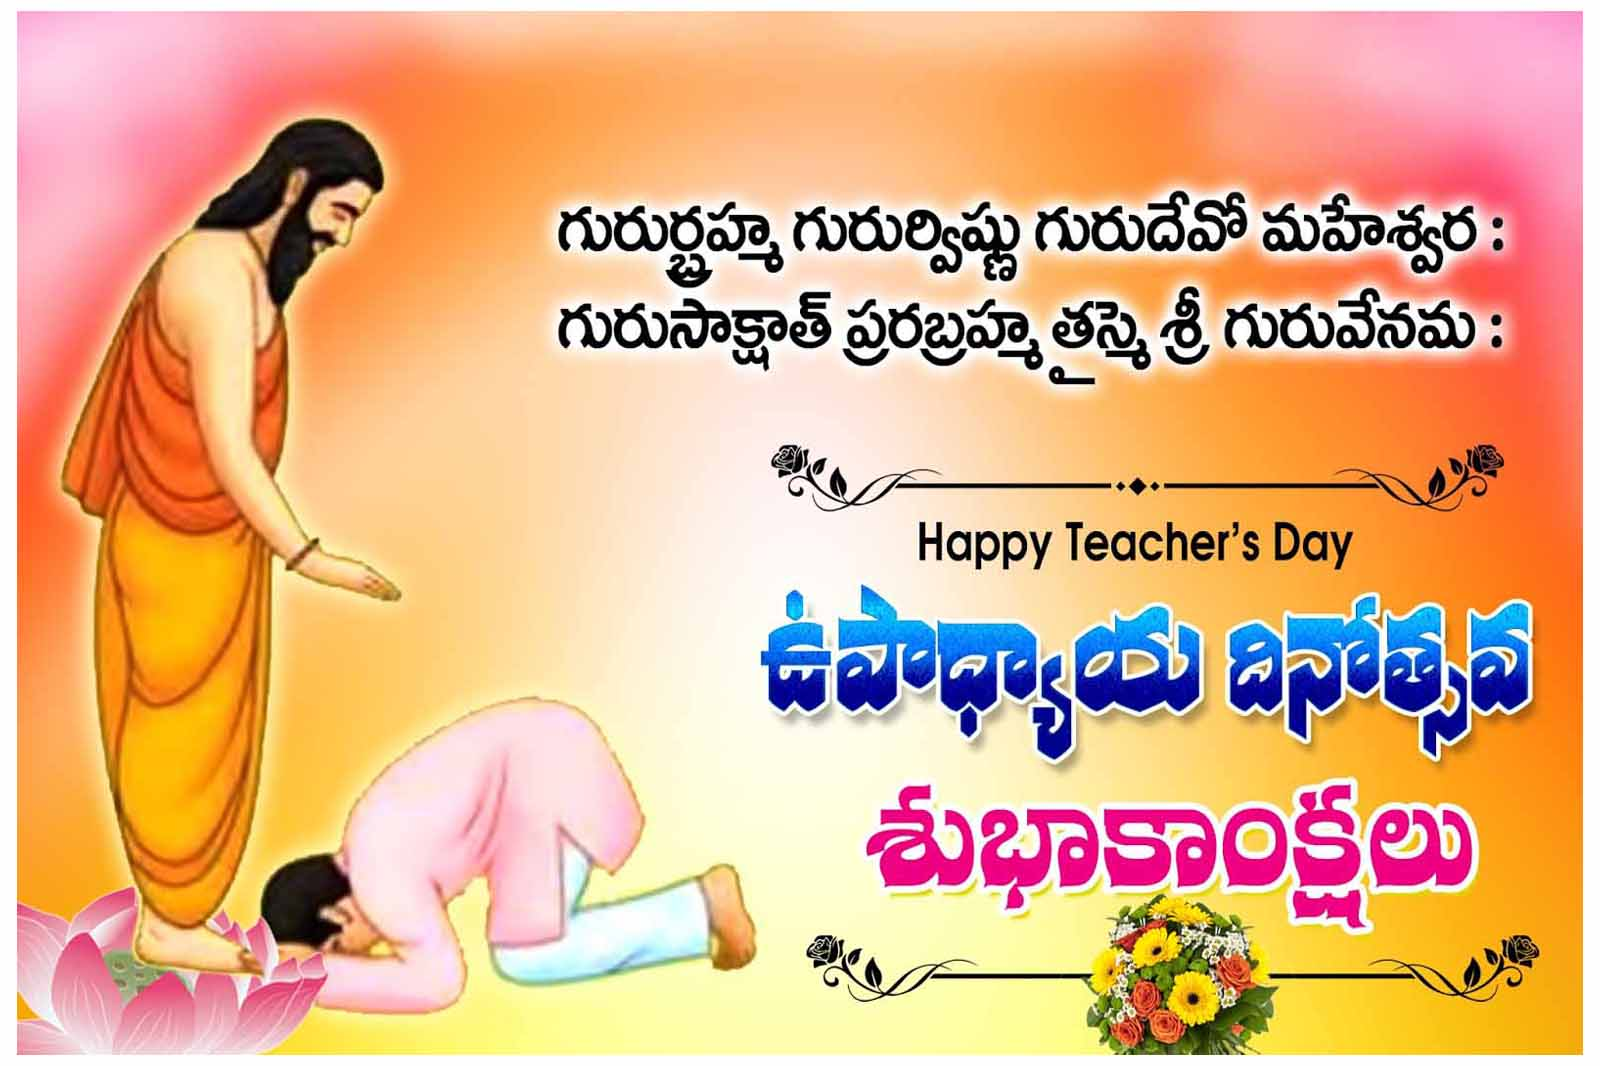 Telugu teachers day greetings quotes teachers day wishes and quotes kristyandbryce Choice Image